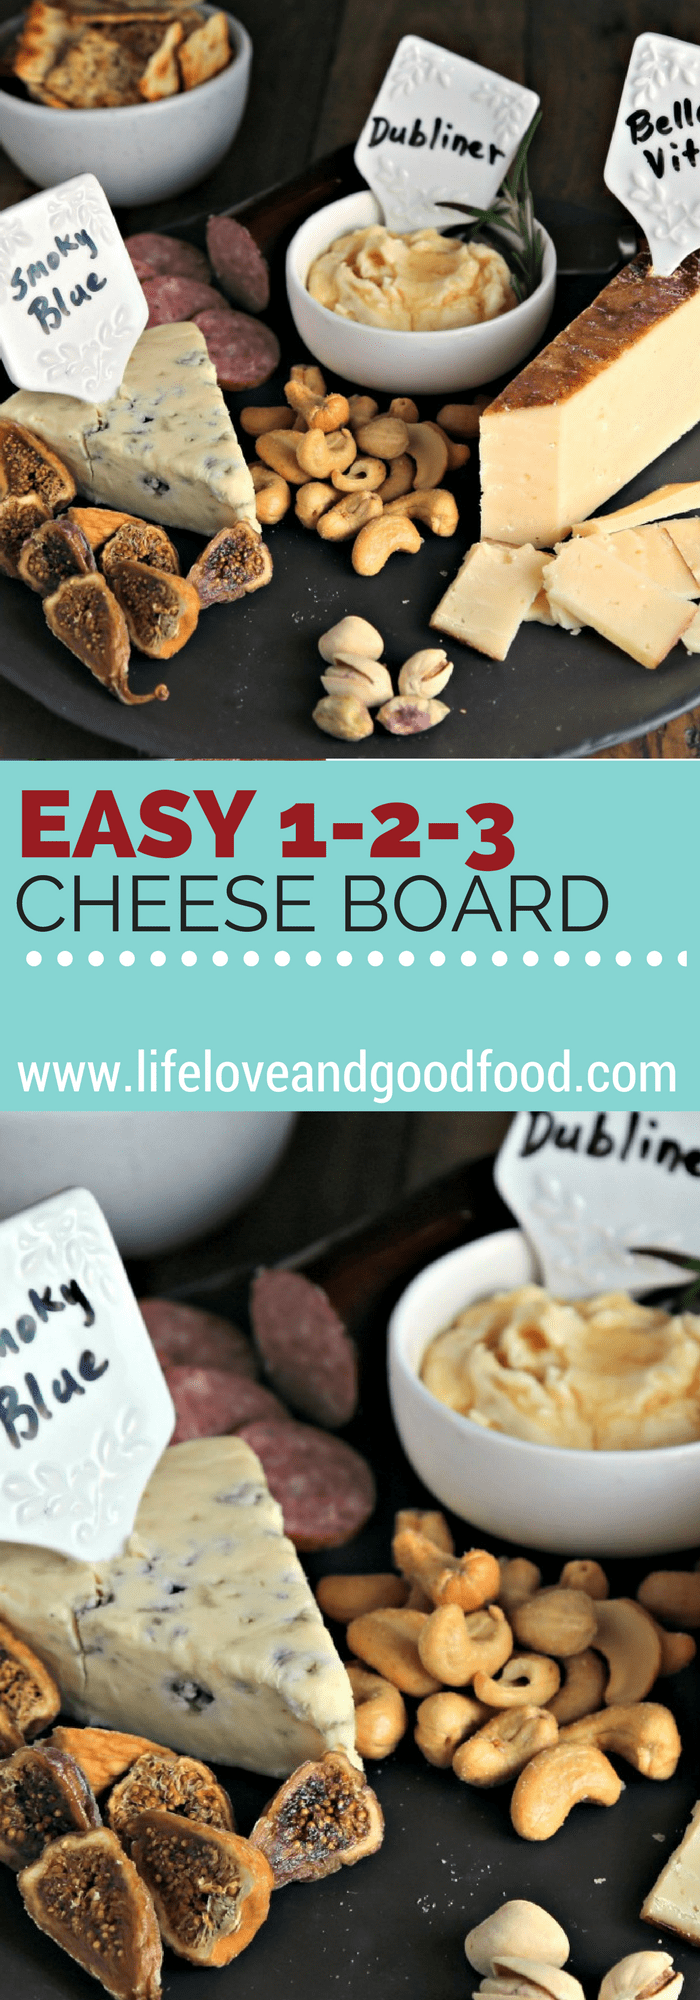 Easy 1-2-3 Cheese Board | Life, Love, and Good Food